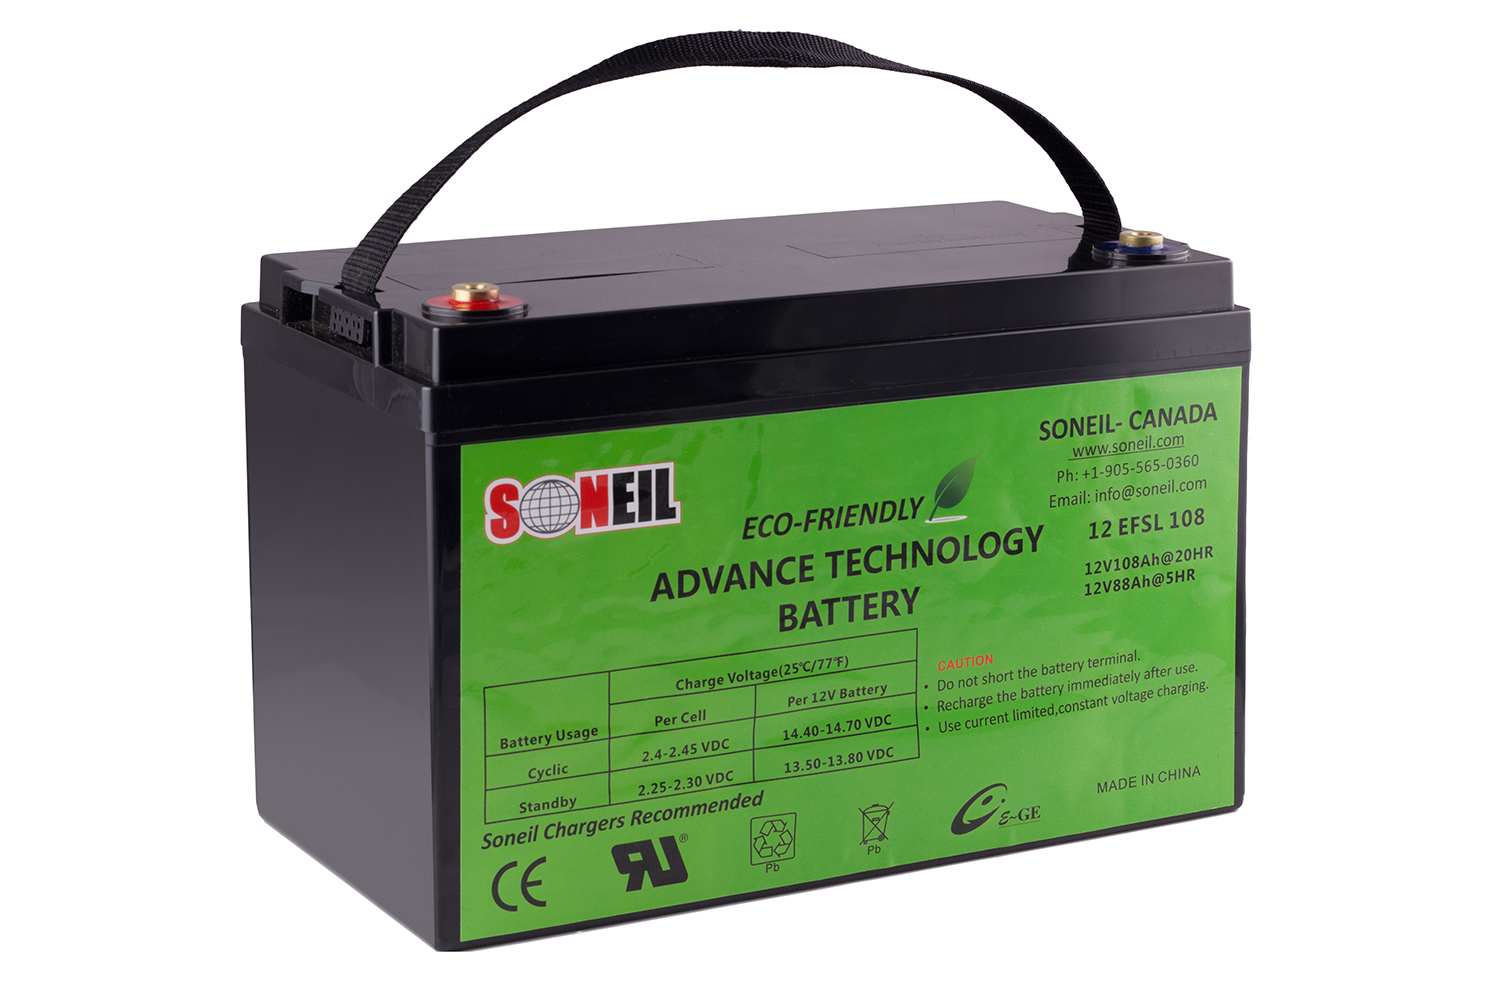 12V 108AH Advance Technology Battery